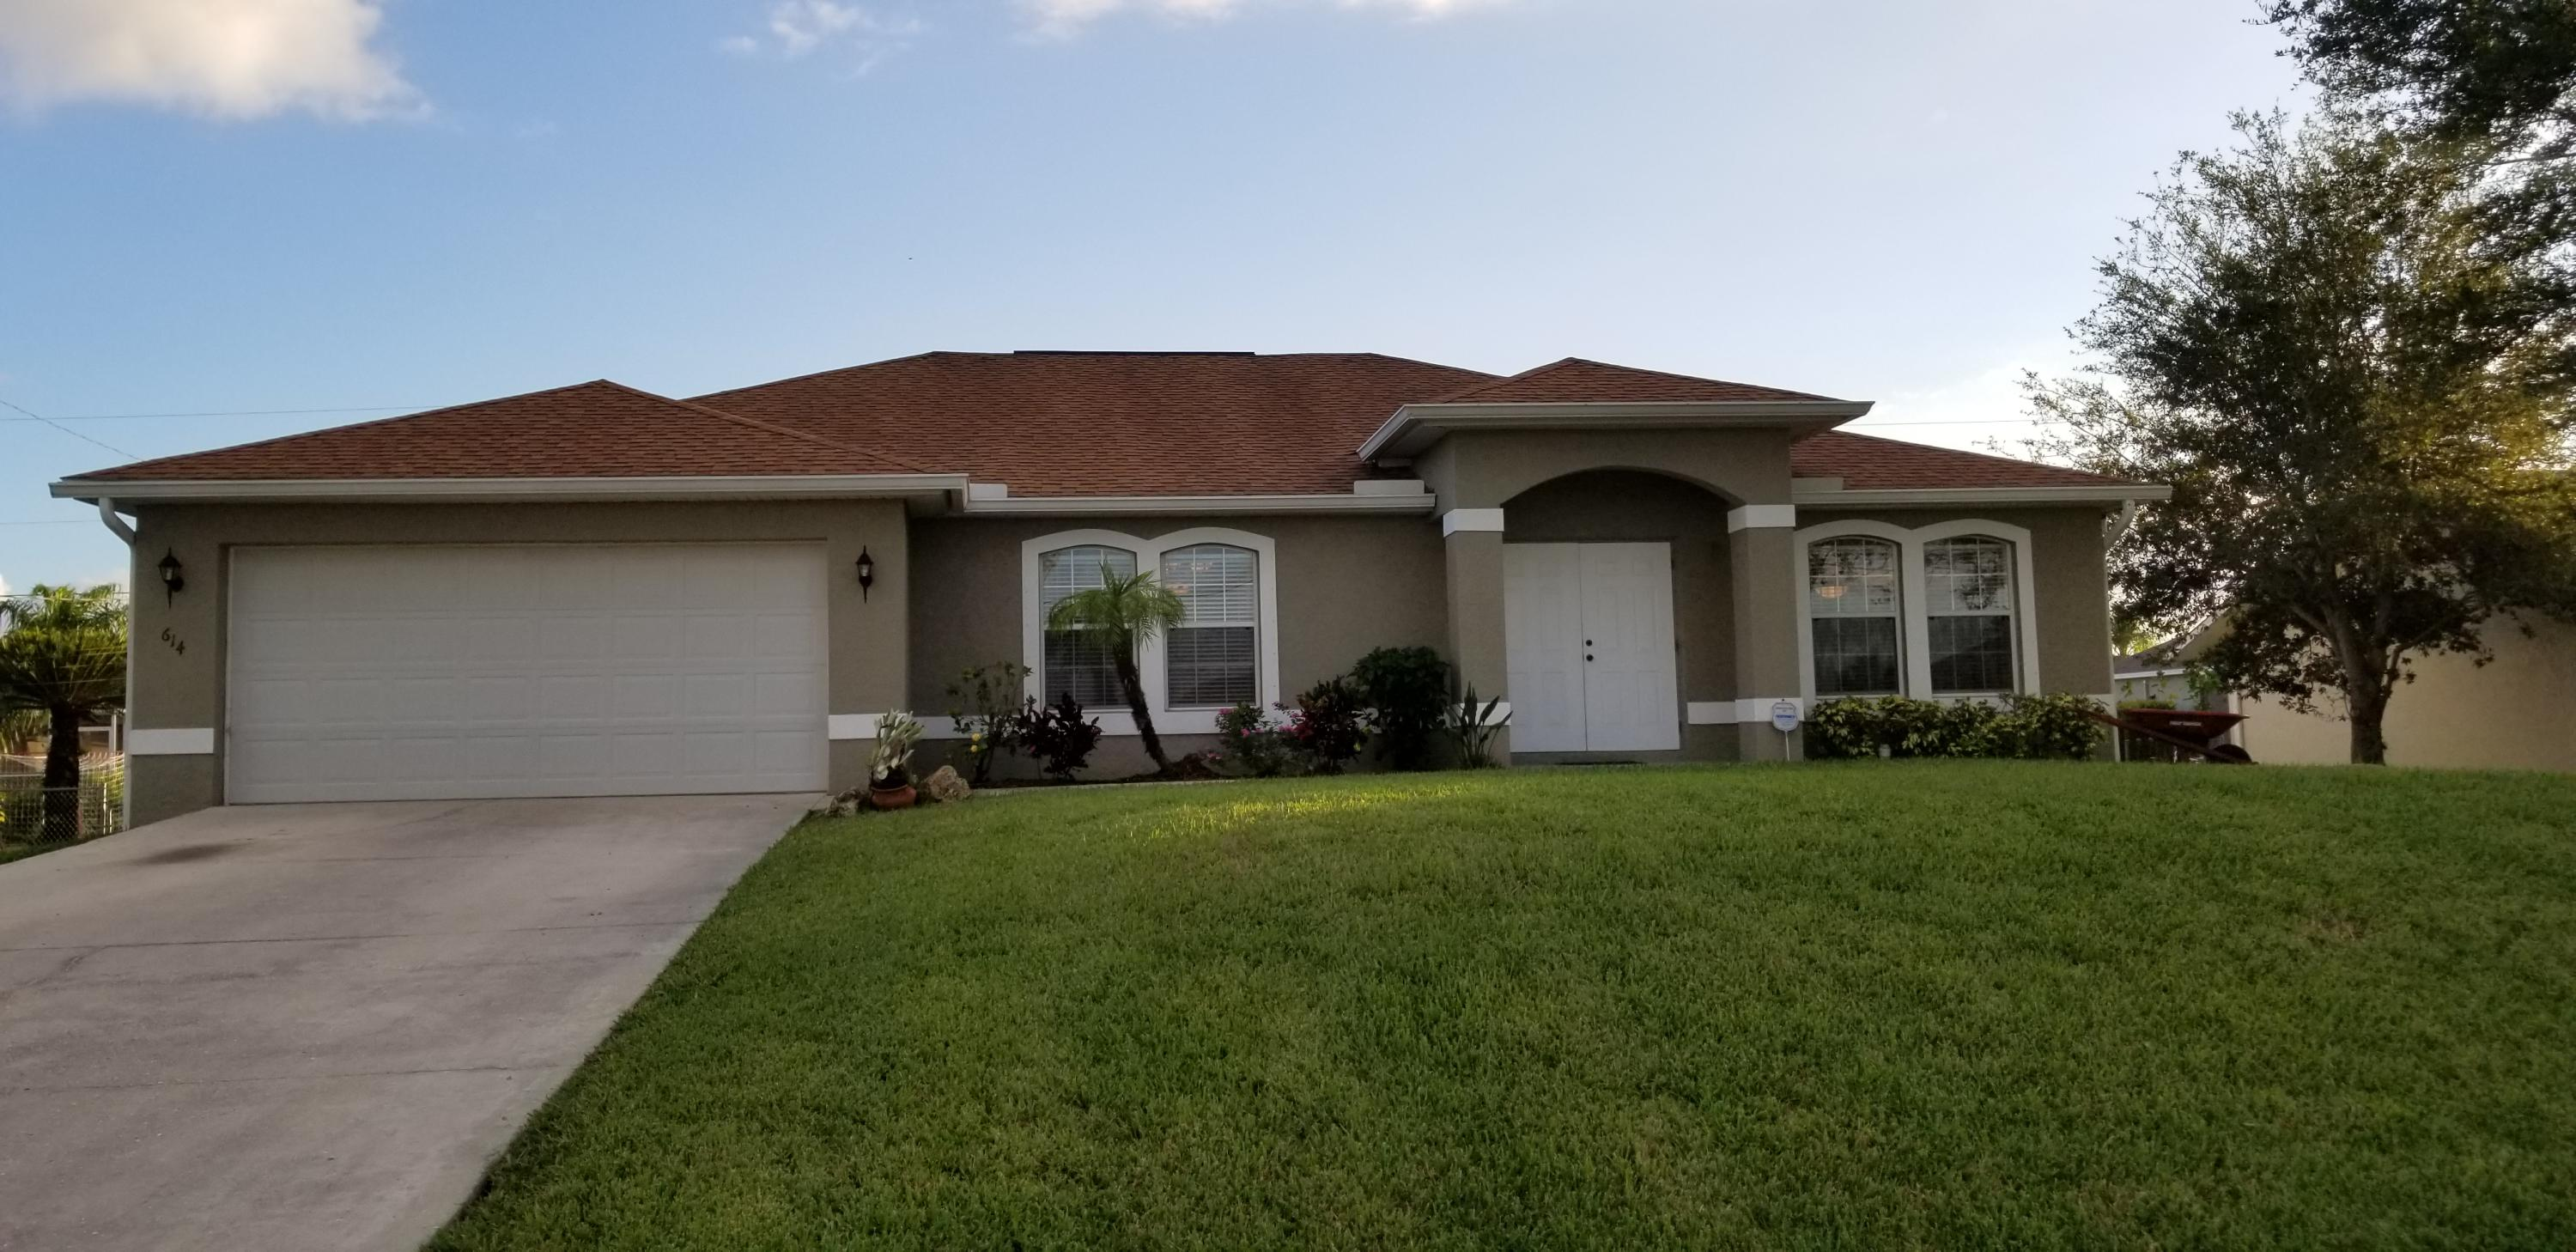 614 SW 22nd Terrace, Cape Coral, Florida